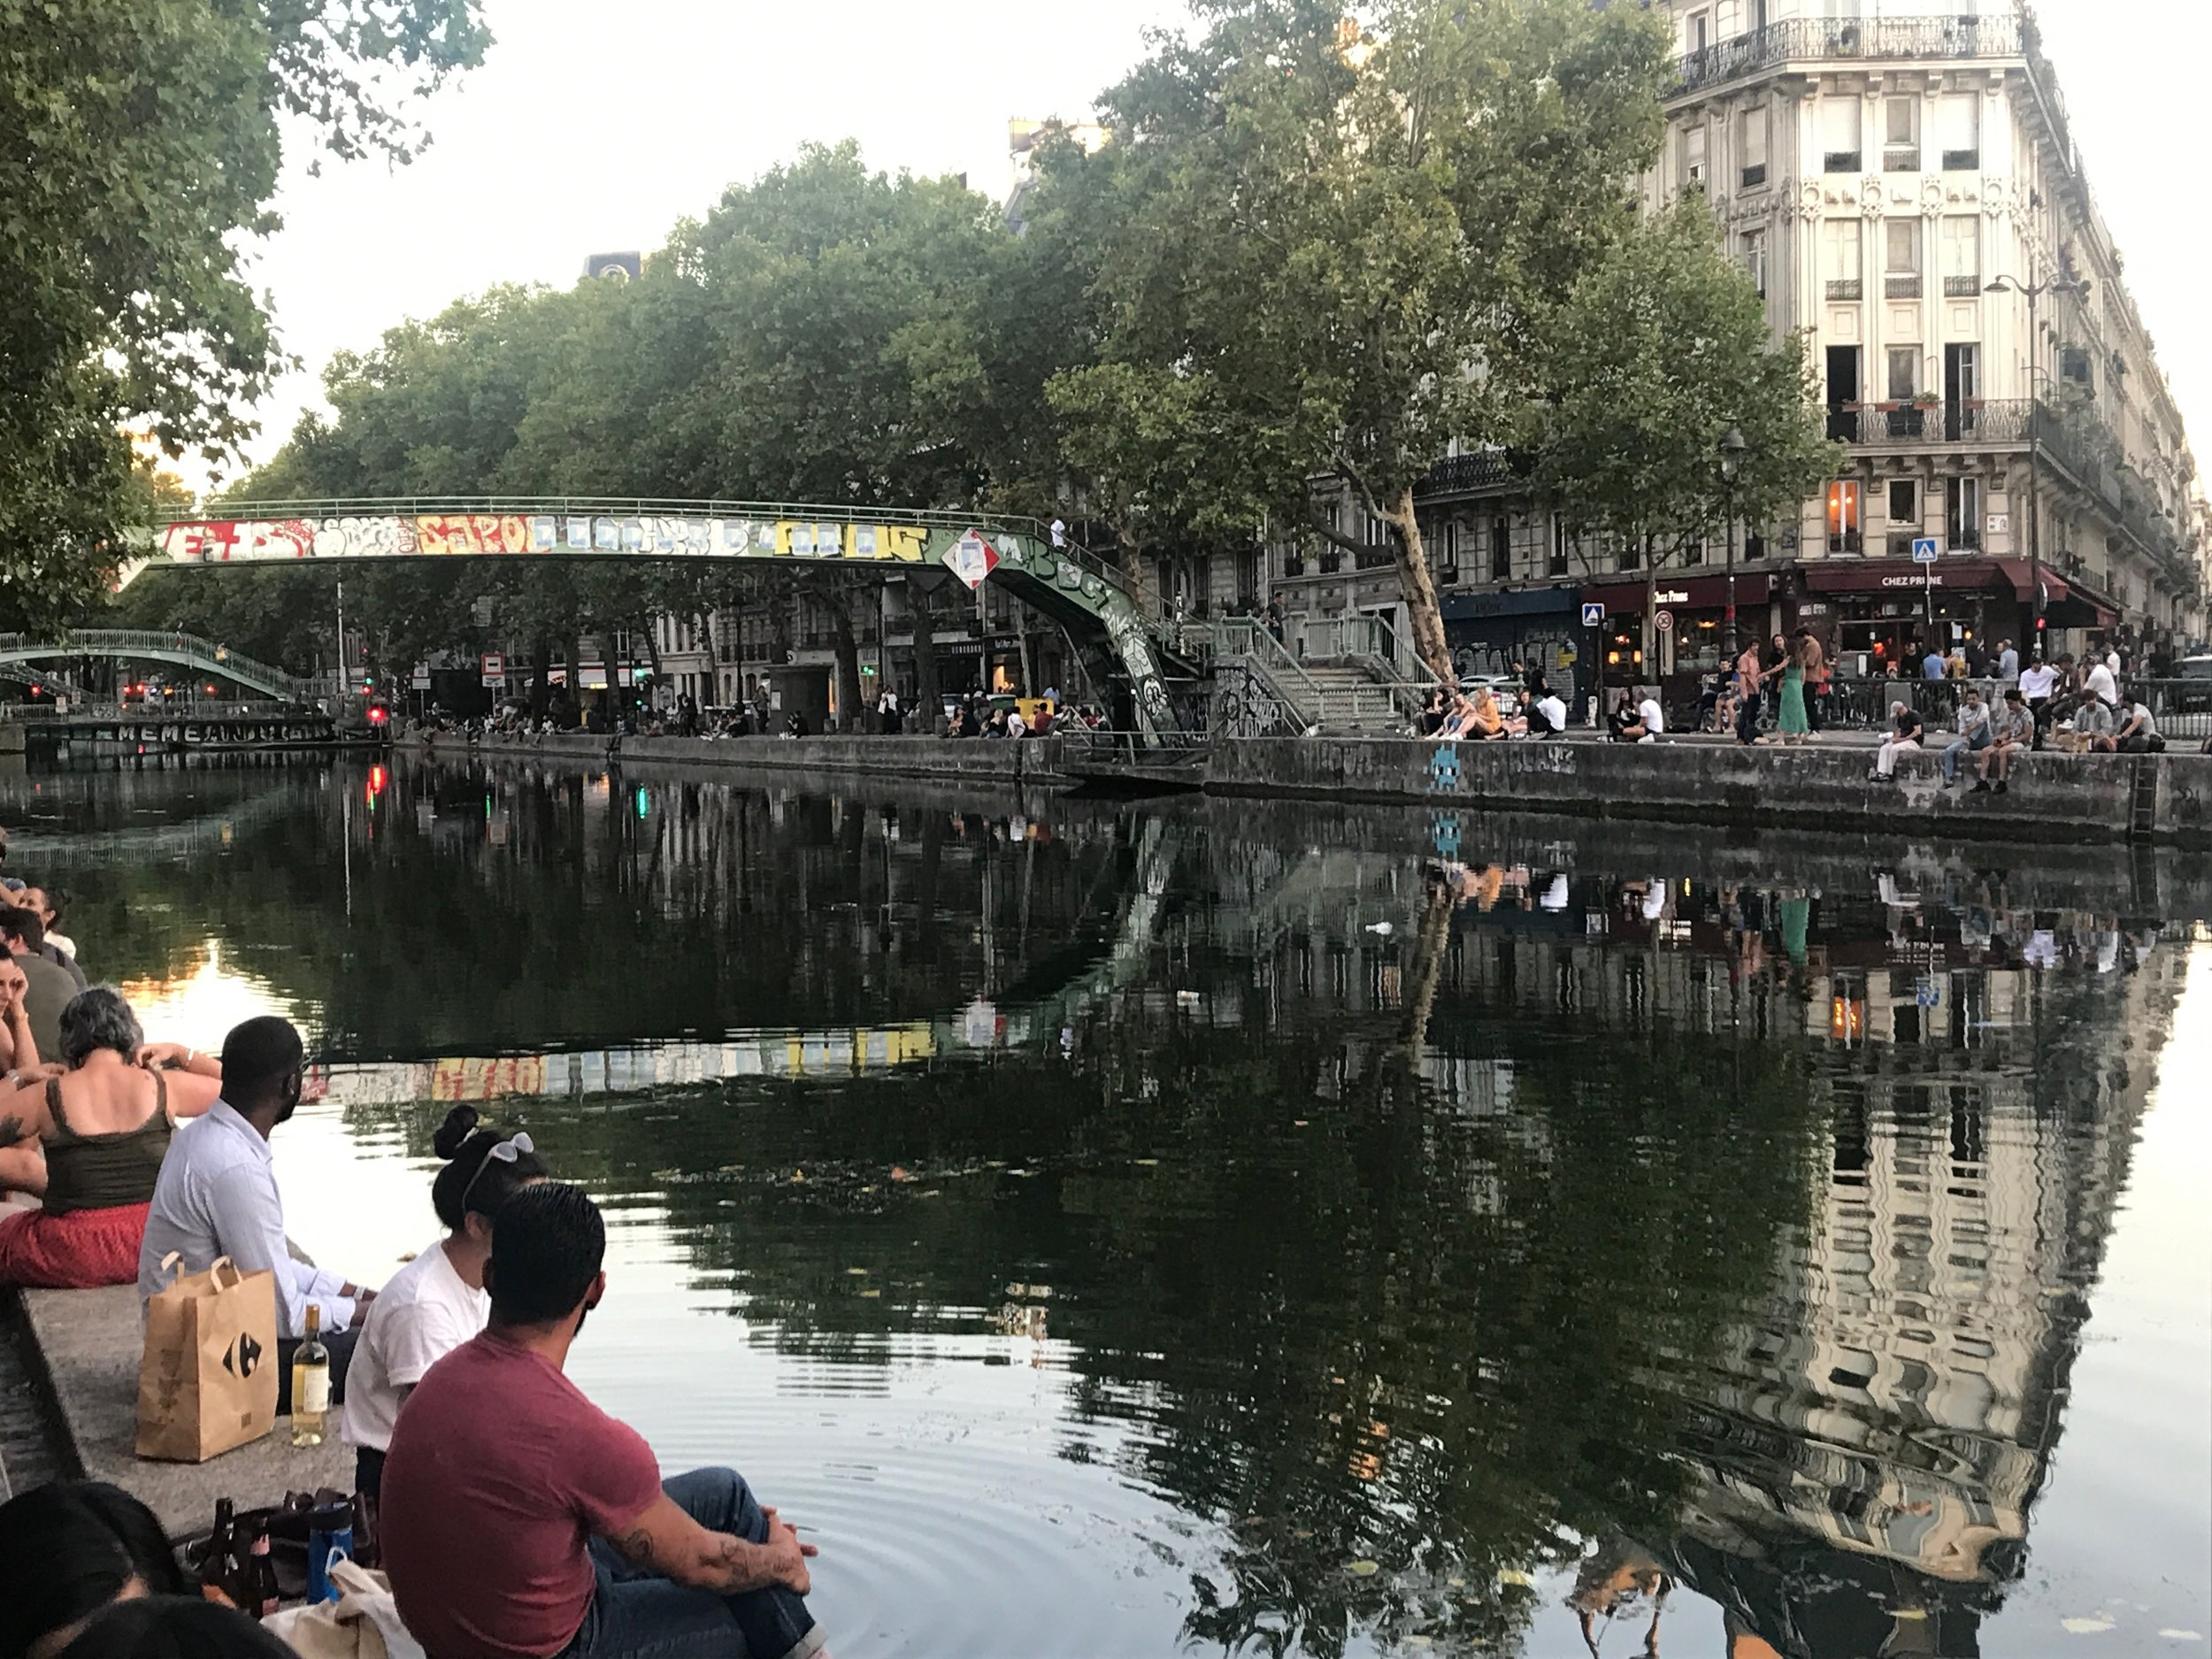 Every day, every night - everybody hangs out along the canal